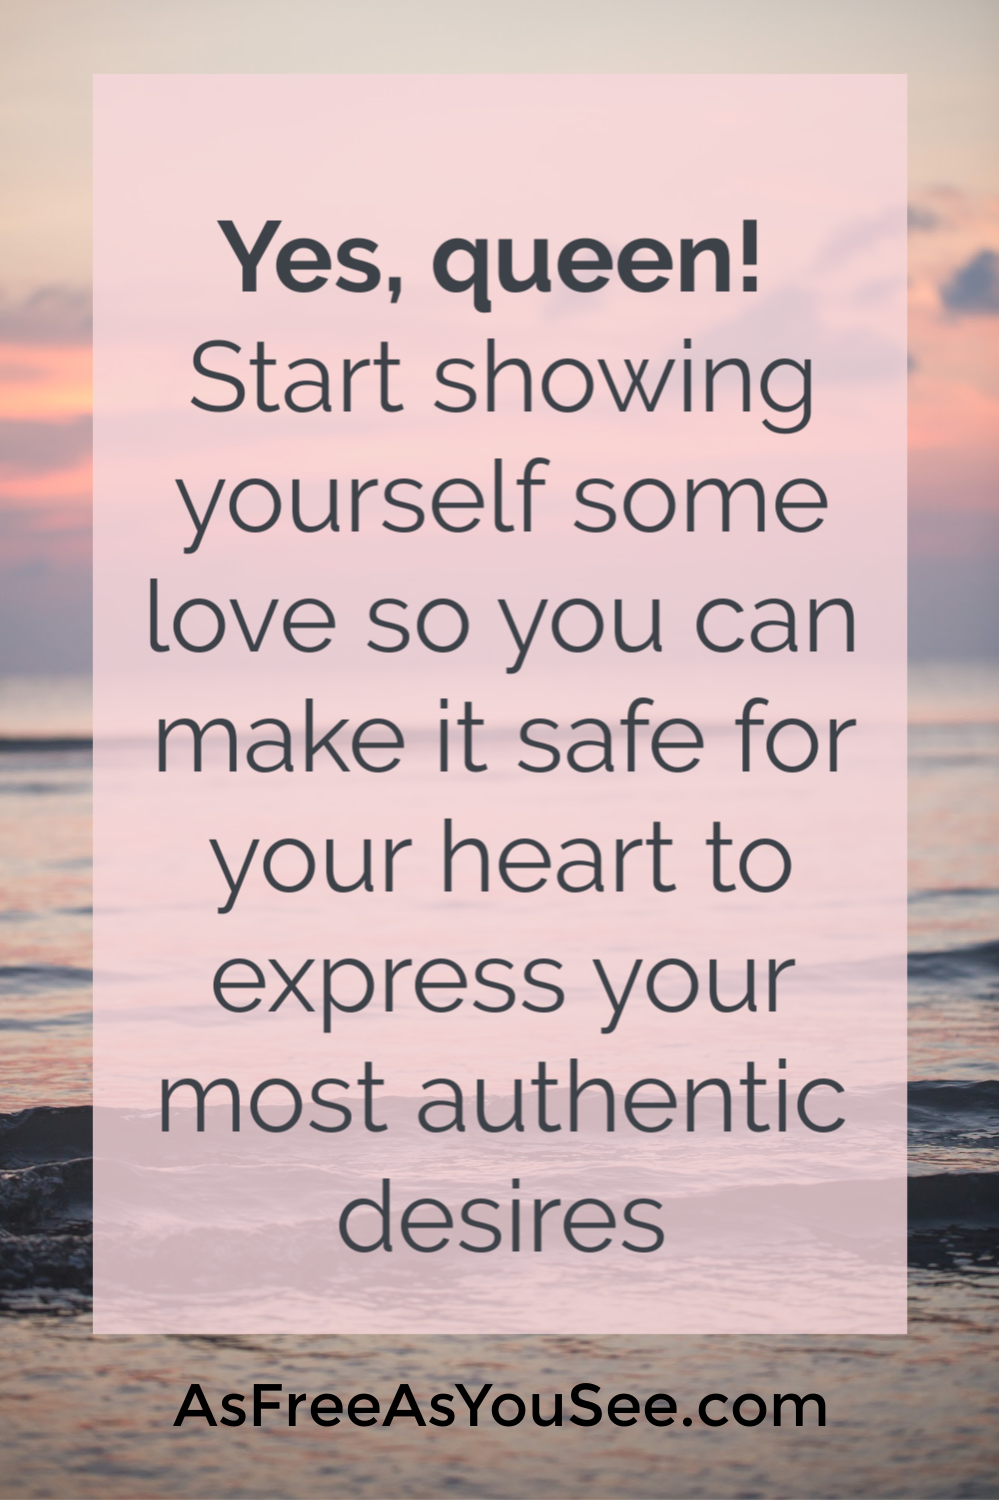 Following your heart can seem scary AF.  With this how-to self-help blog, learn 5 tips that can set you on the path of following your heart and self-discovery. Read the blog, now, and allow your heart to be the guide.